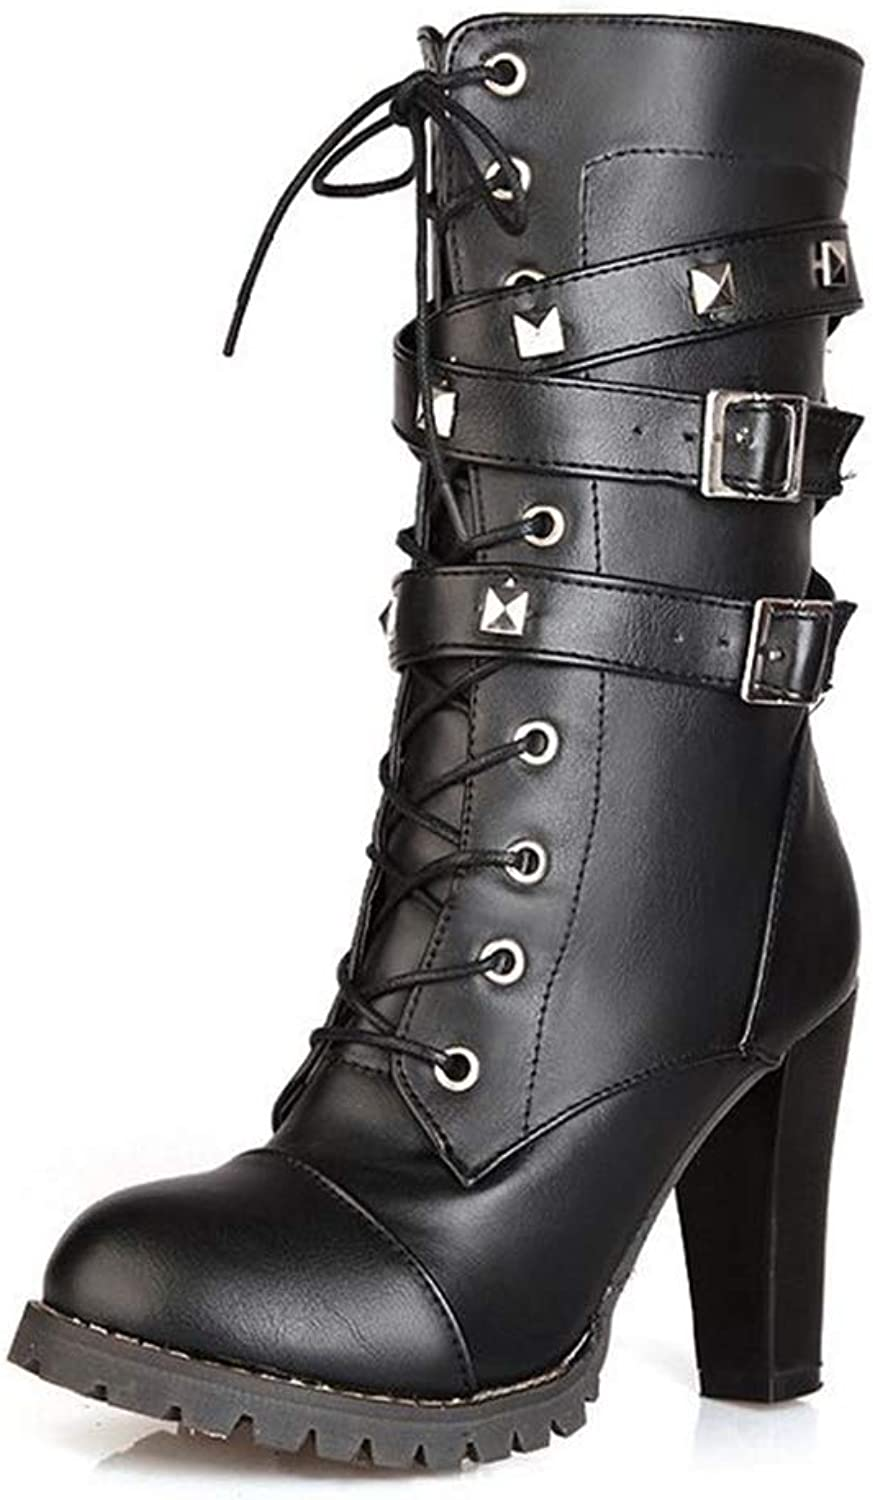 Gusha Women's high Heel Ankle Boots Motorcycle Boots Thick Heel Boots